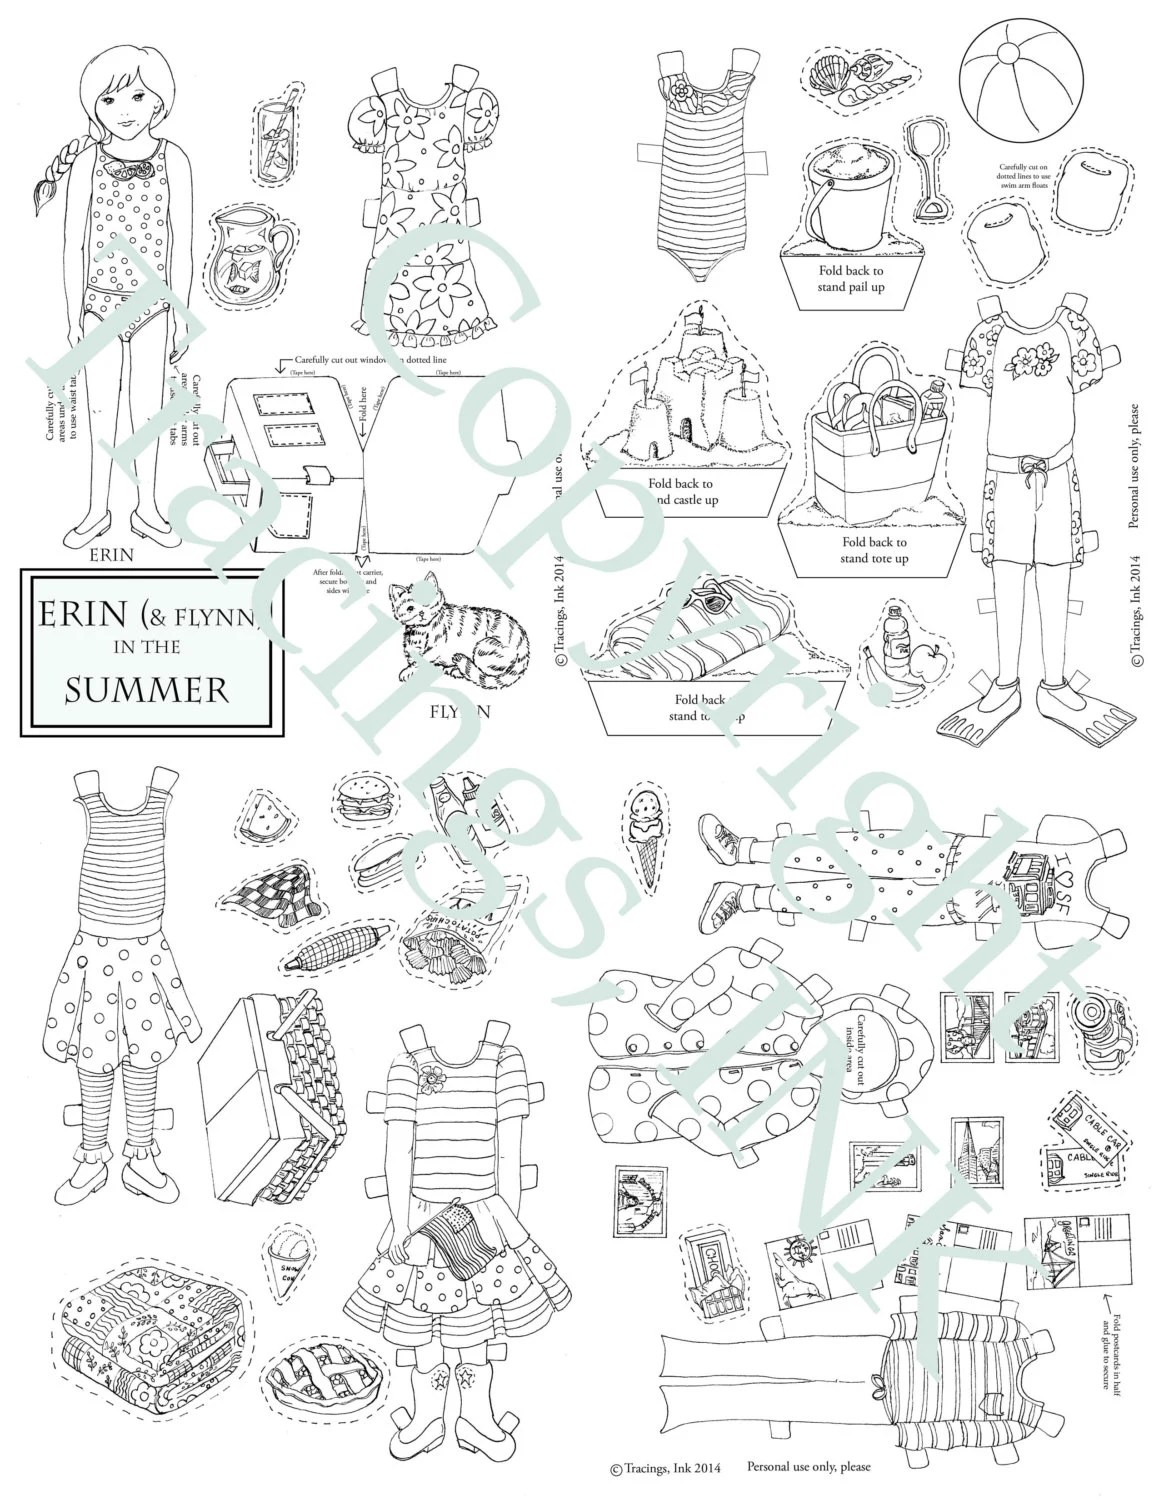 Paper Doll Set Printable Erin In The Summer Black